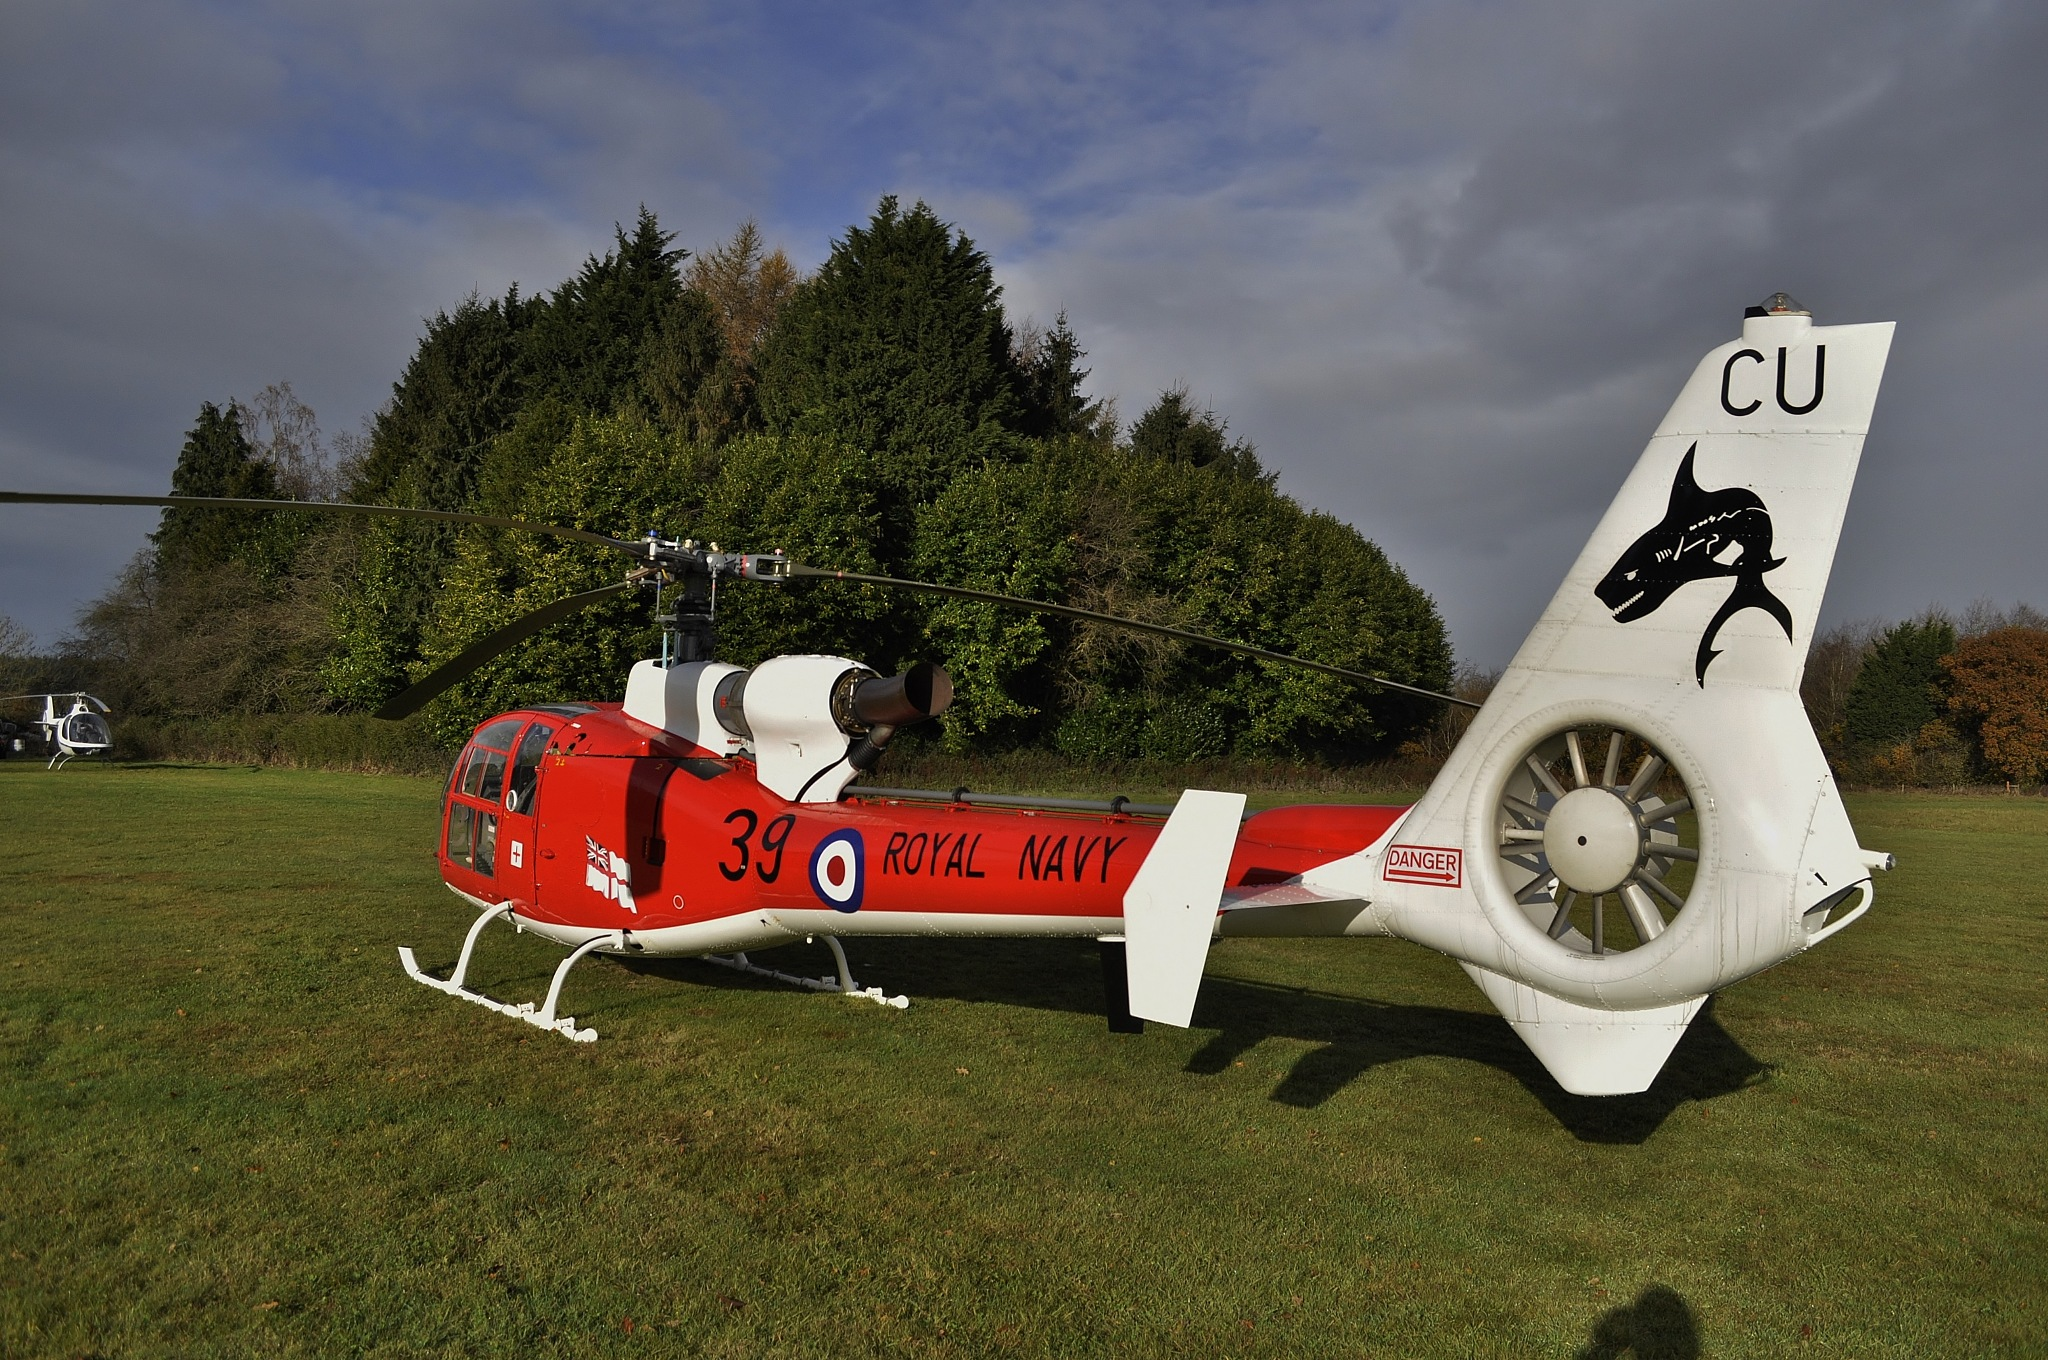 Ex Shark display helicopter by Simon Hackett